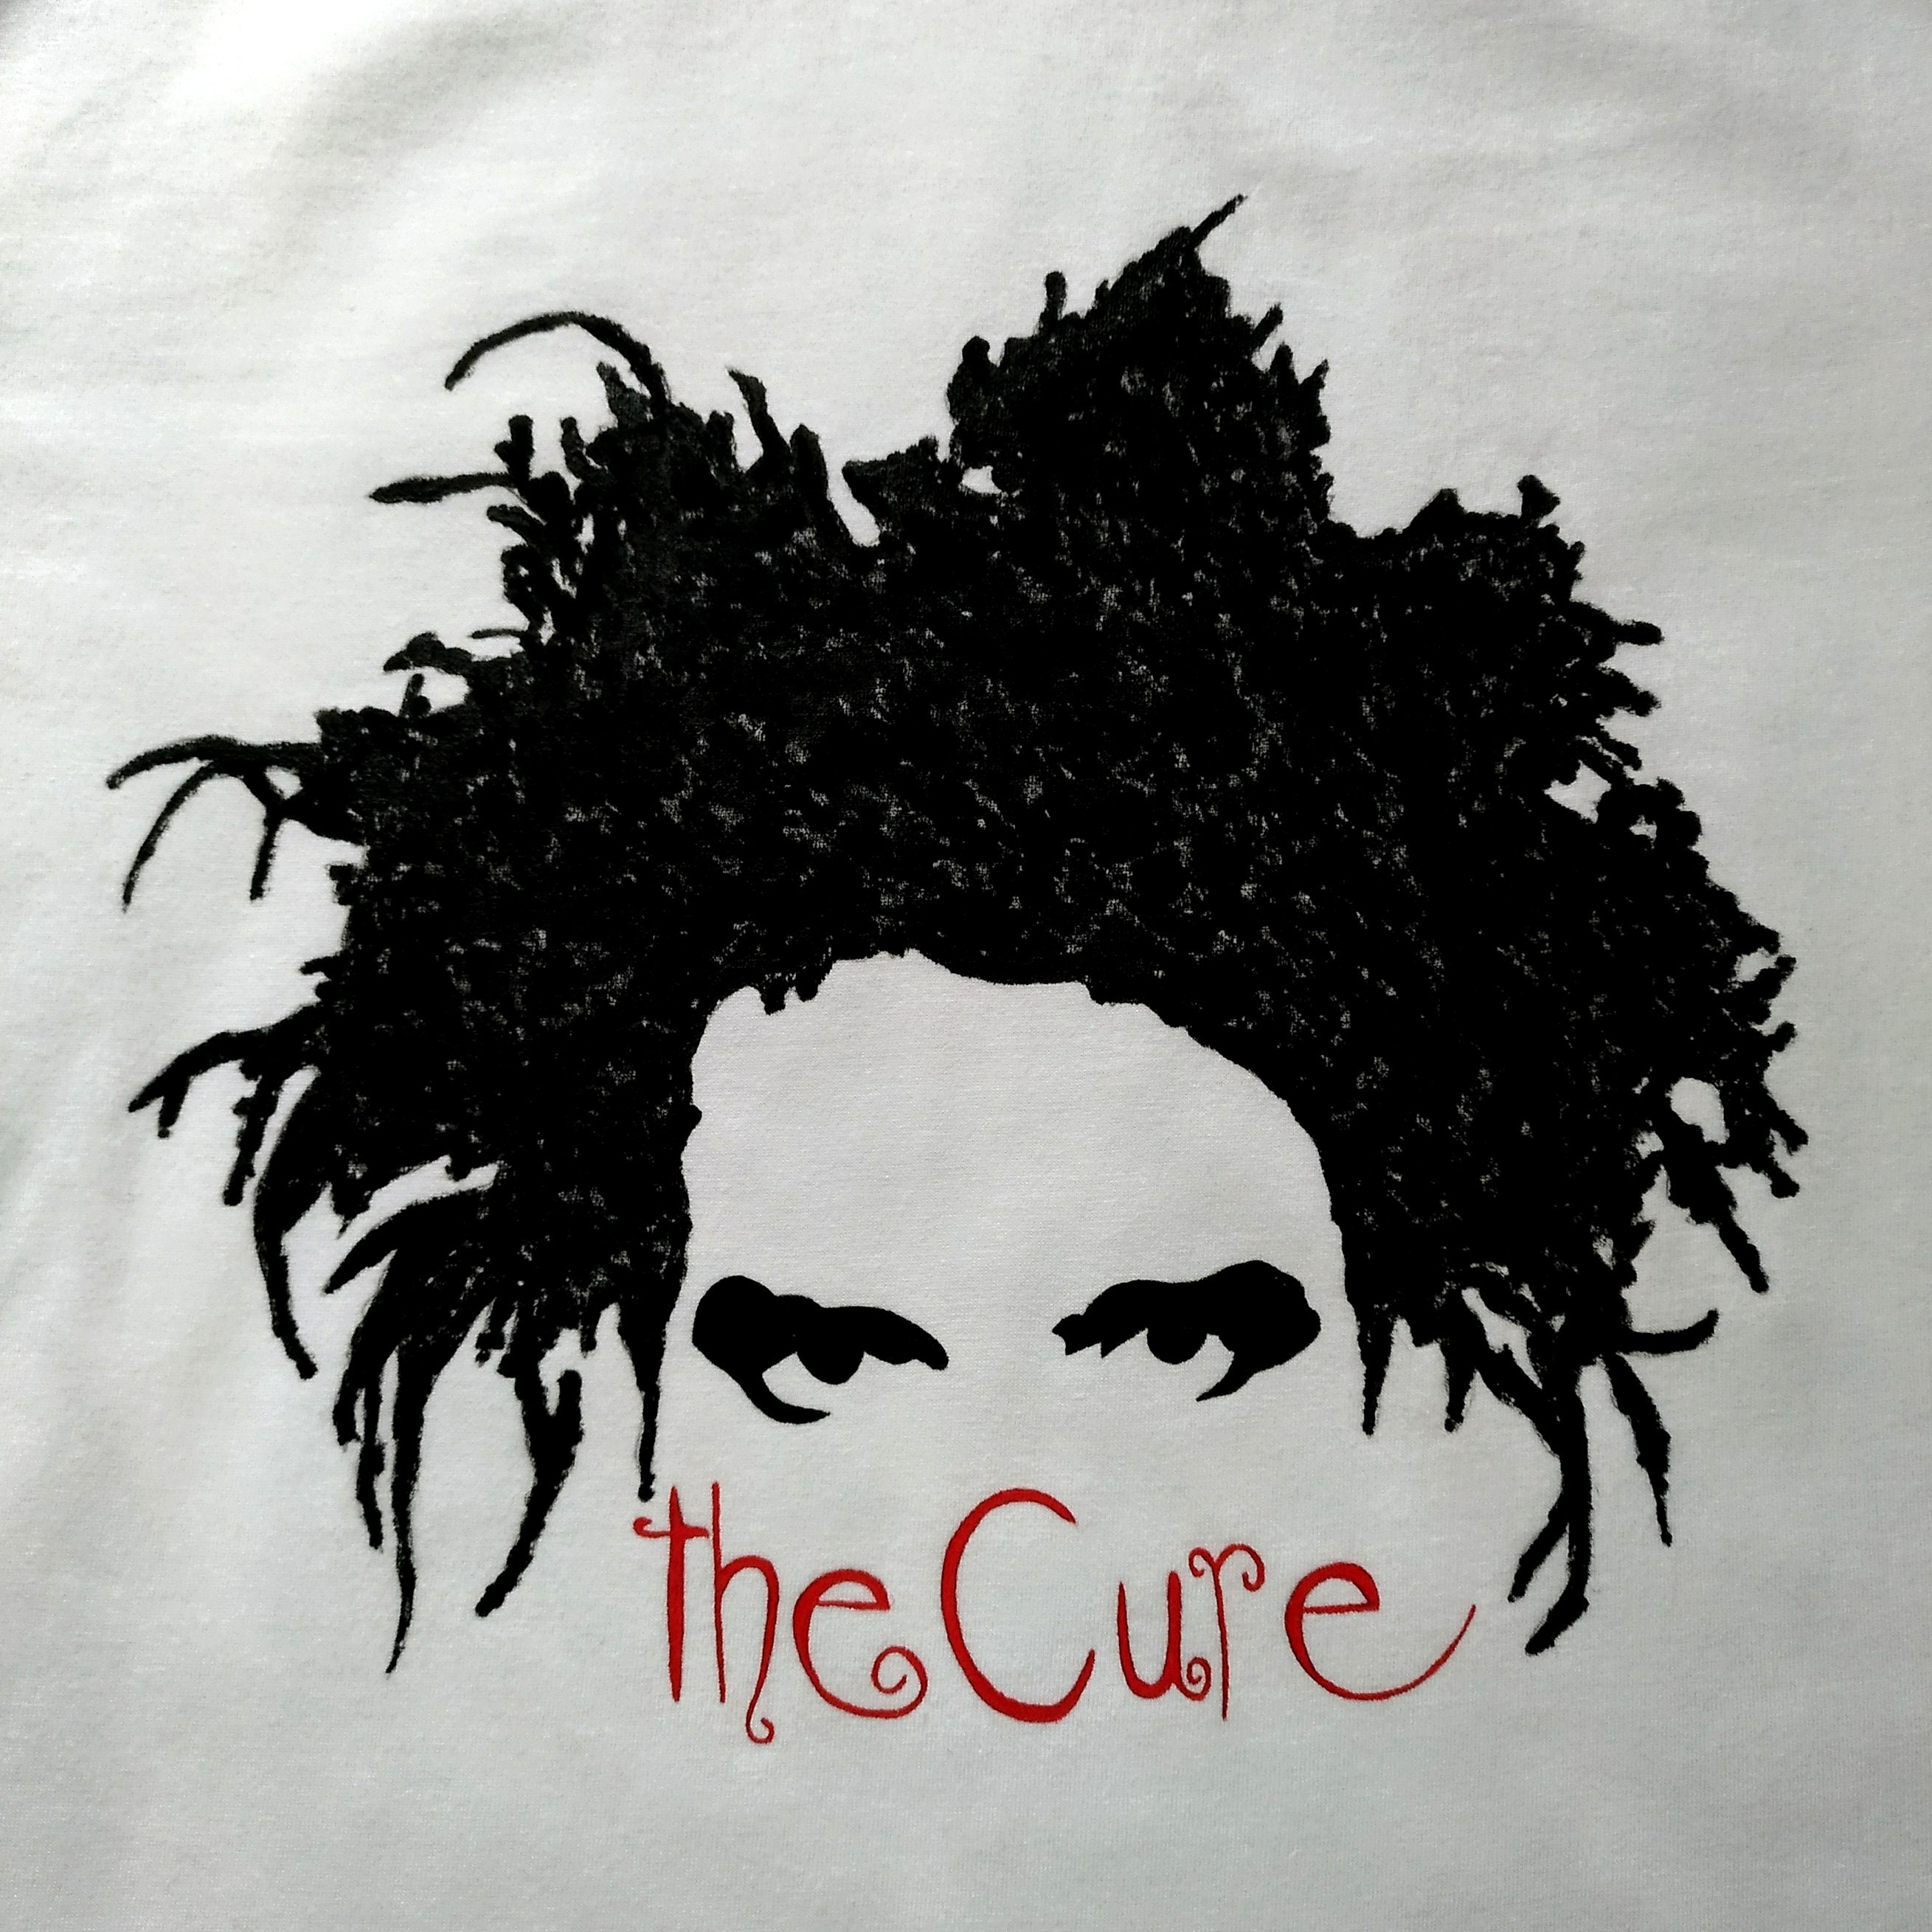 THE CURE tshirt, Robert Smith, music, rock music, rock band